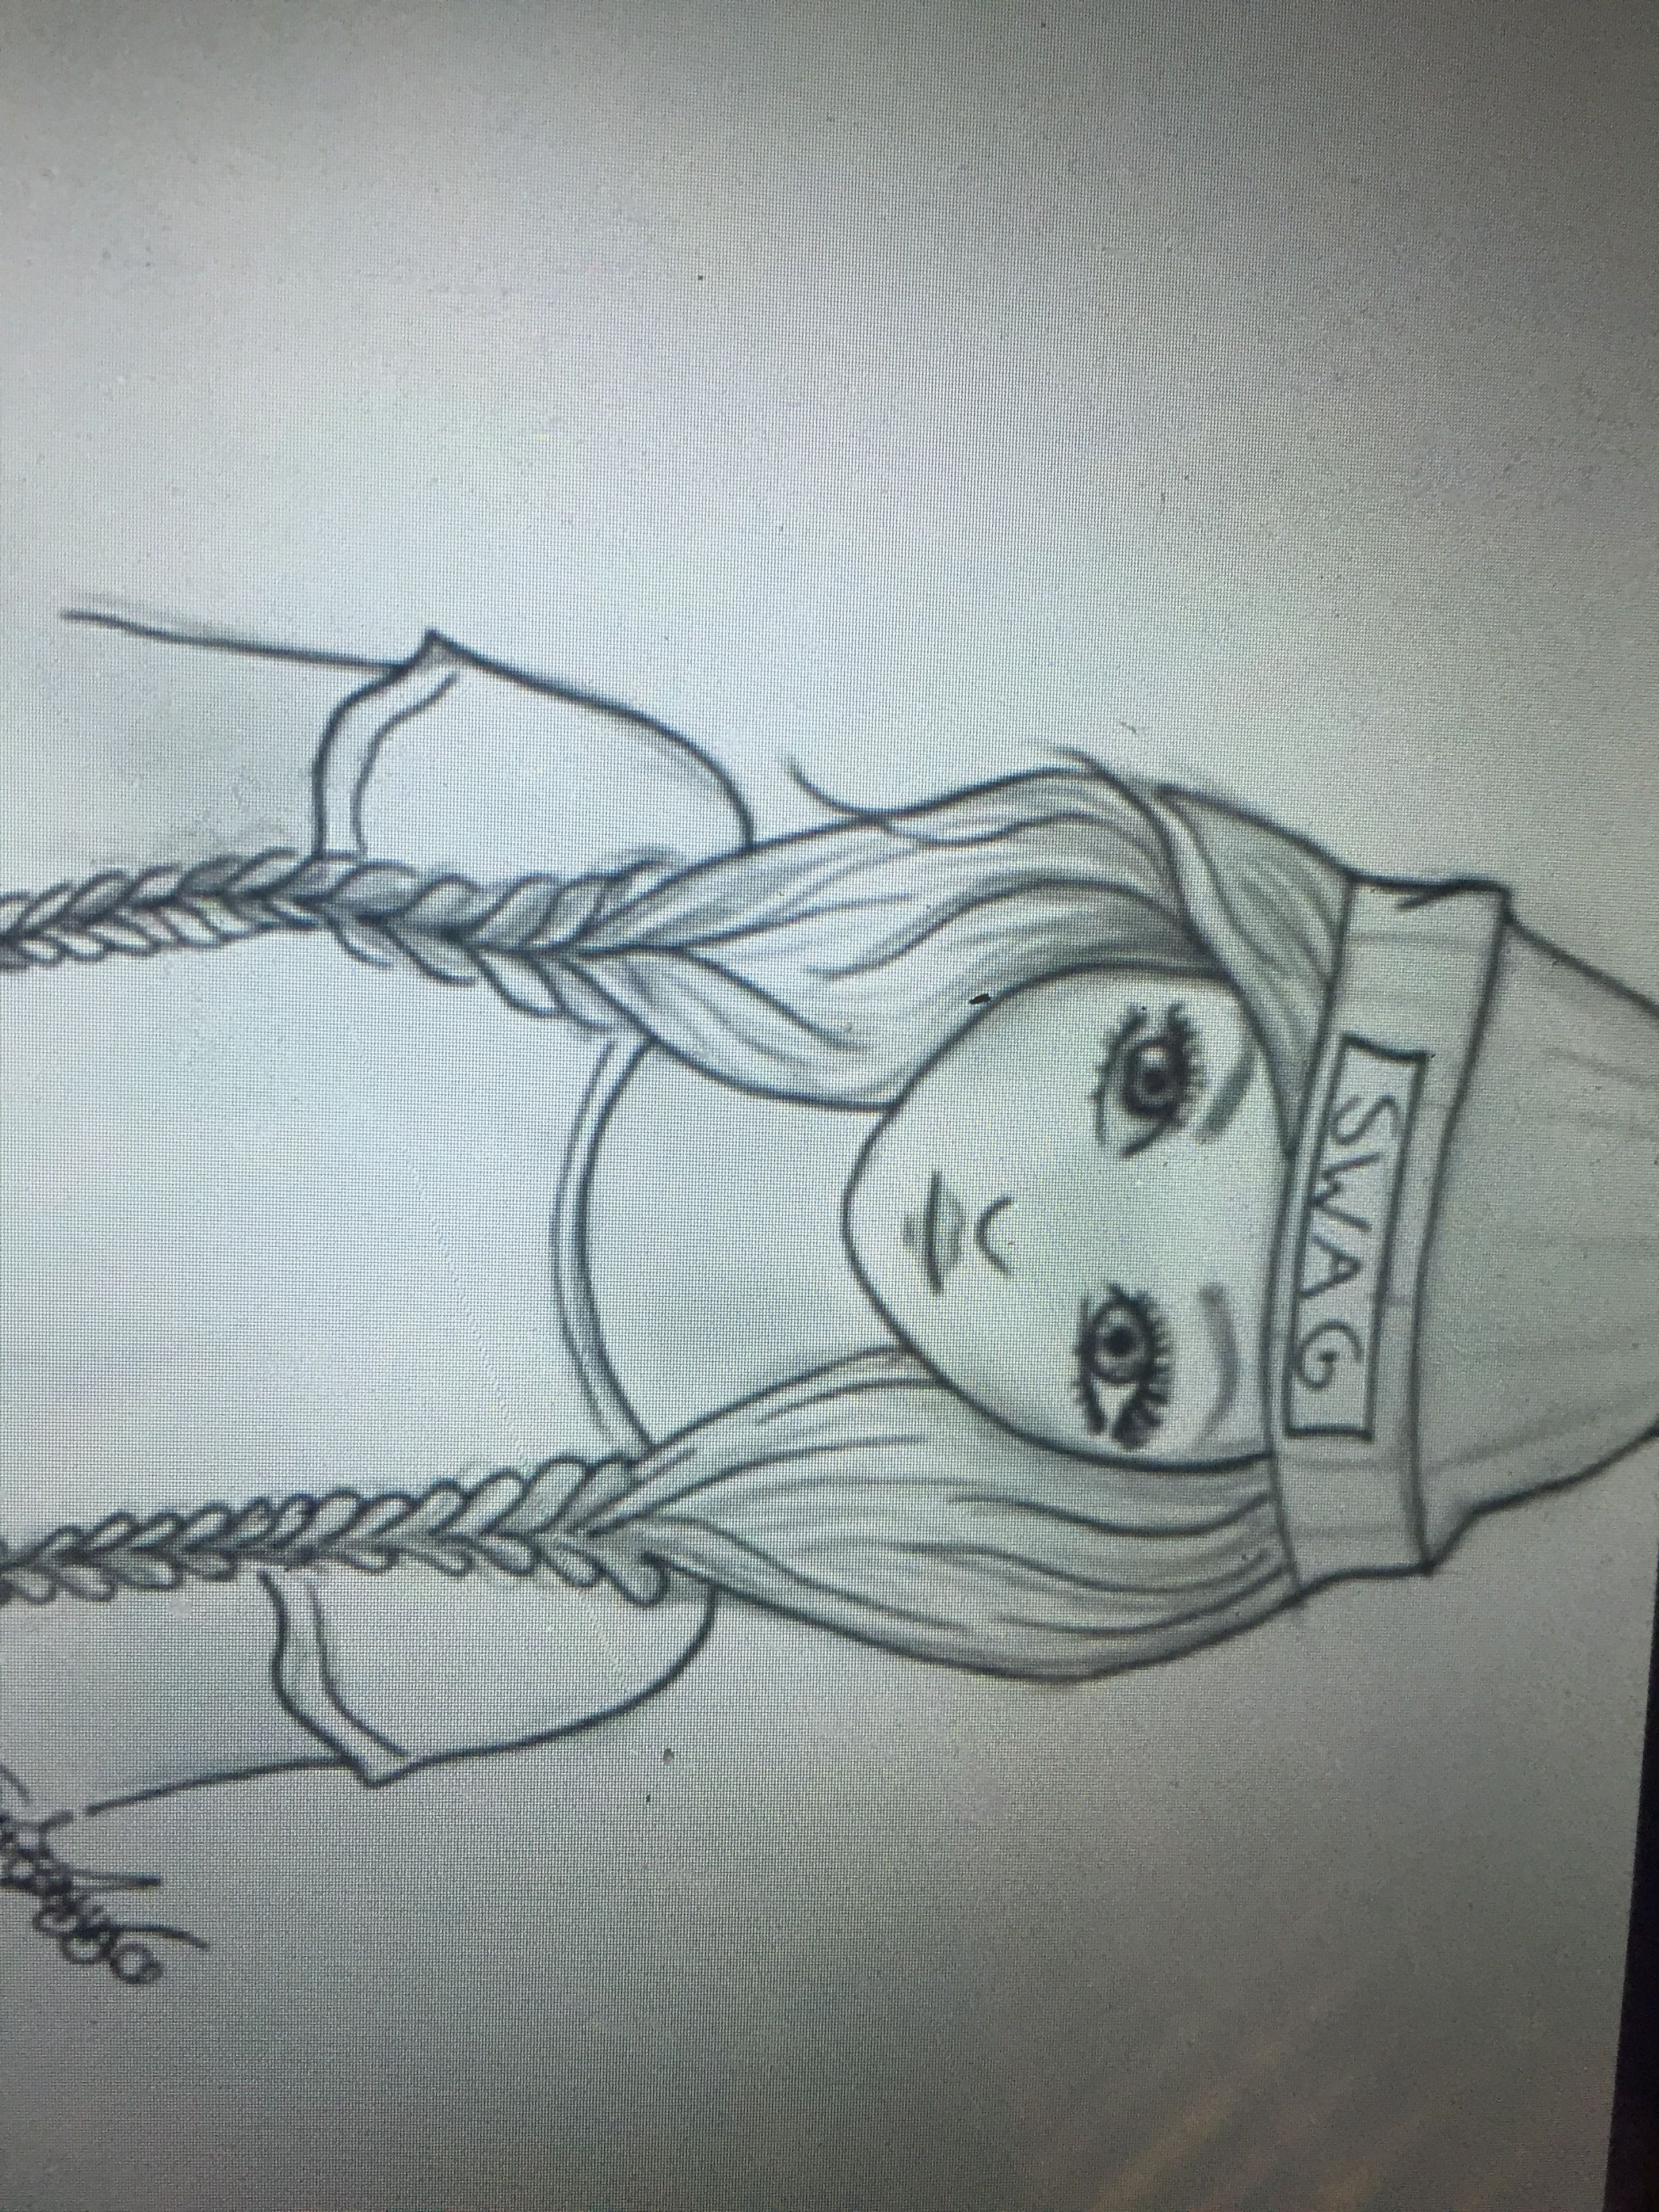 Tumbler swag girl drawing / easy/ braids/ sketch/ hair. Want